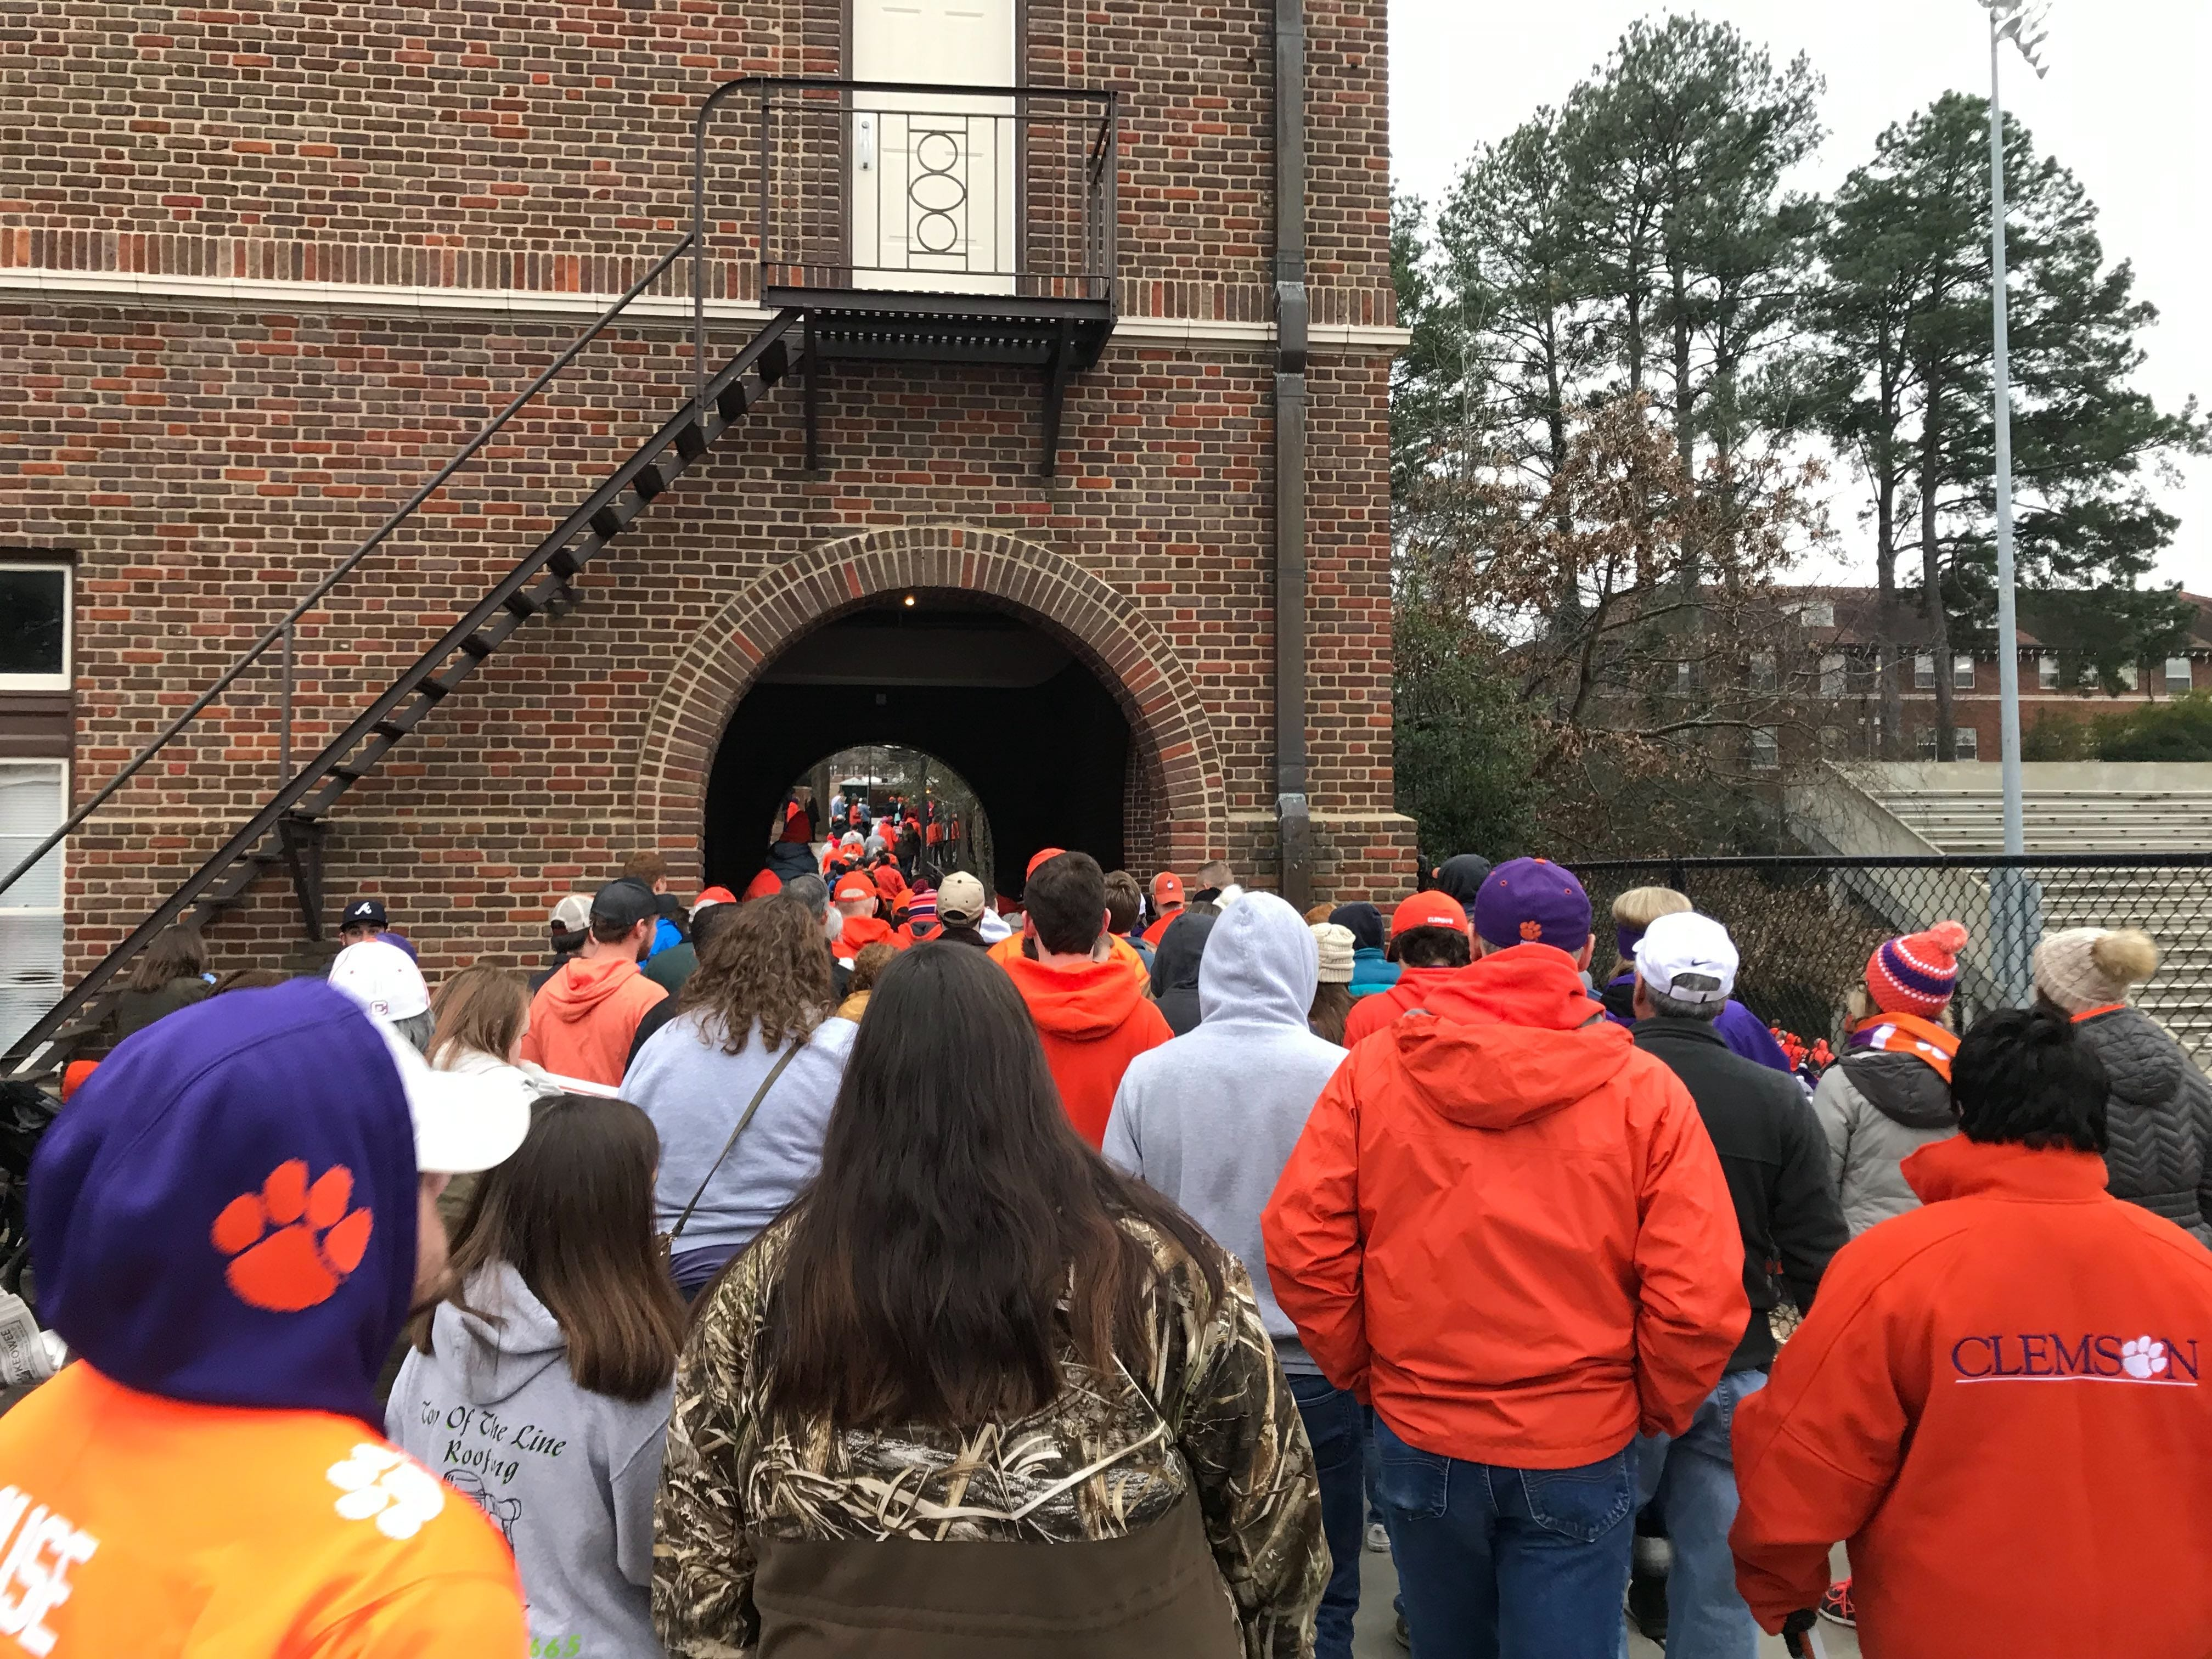 At the conclusion of the parade, Clemson fans flood toward Clemson Memorial Stadium for the second part of the celebration.